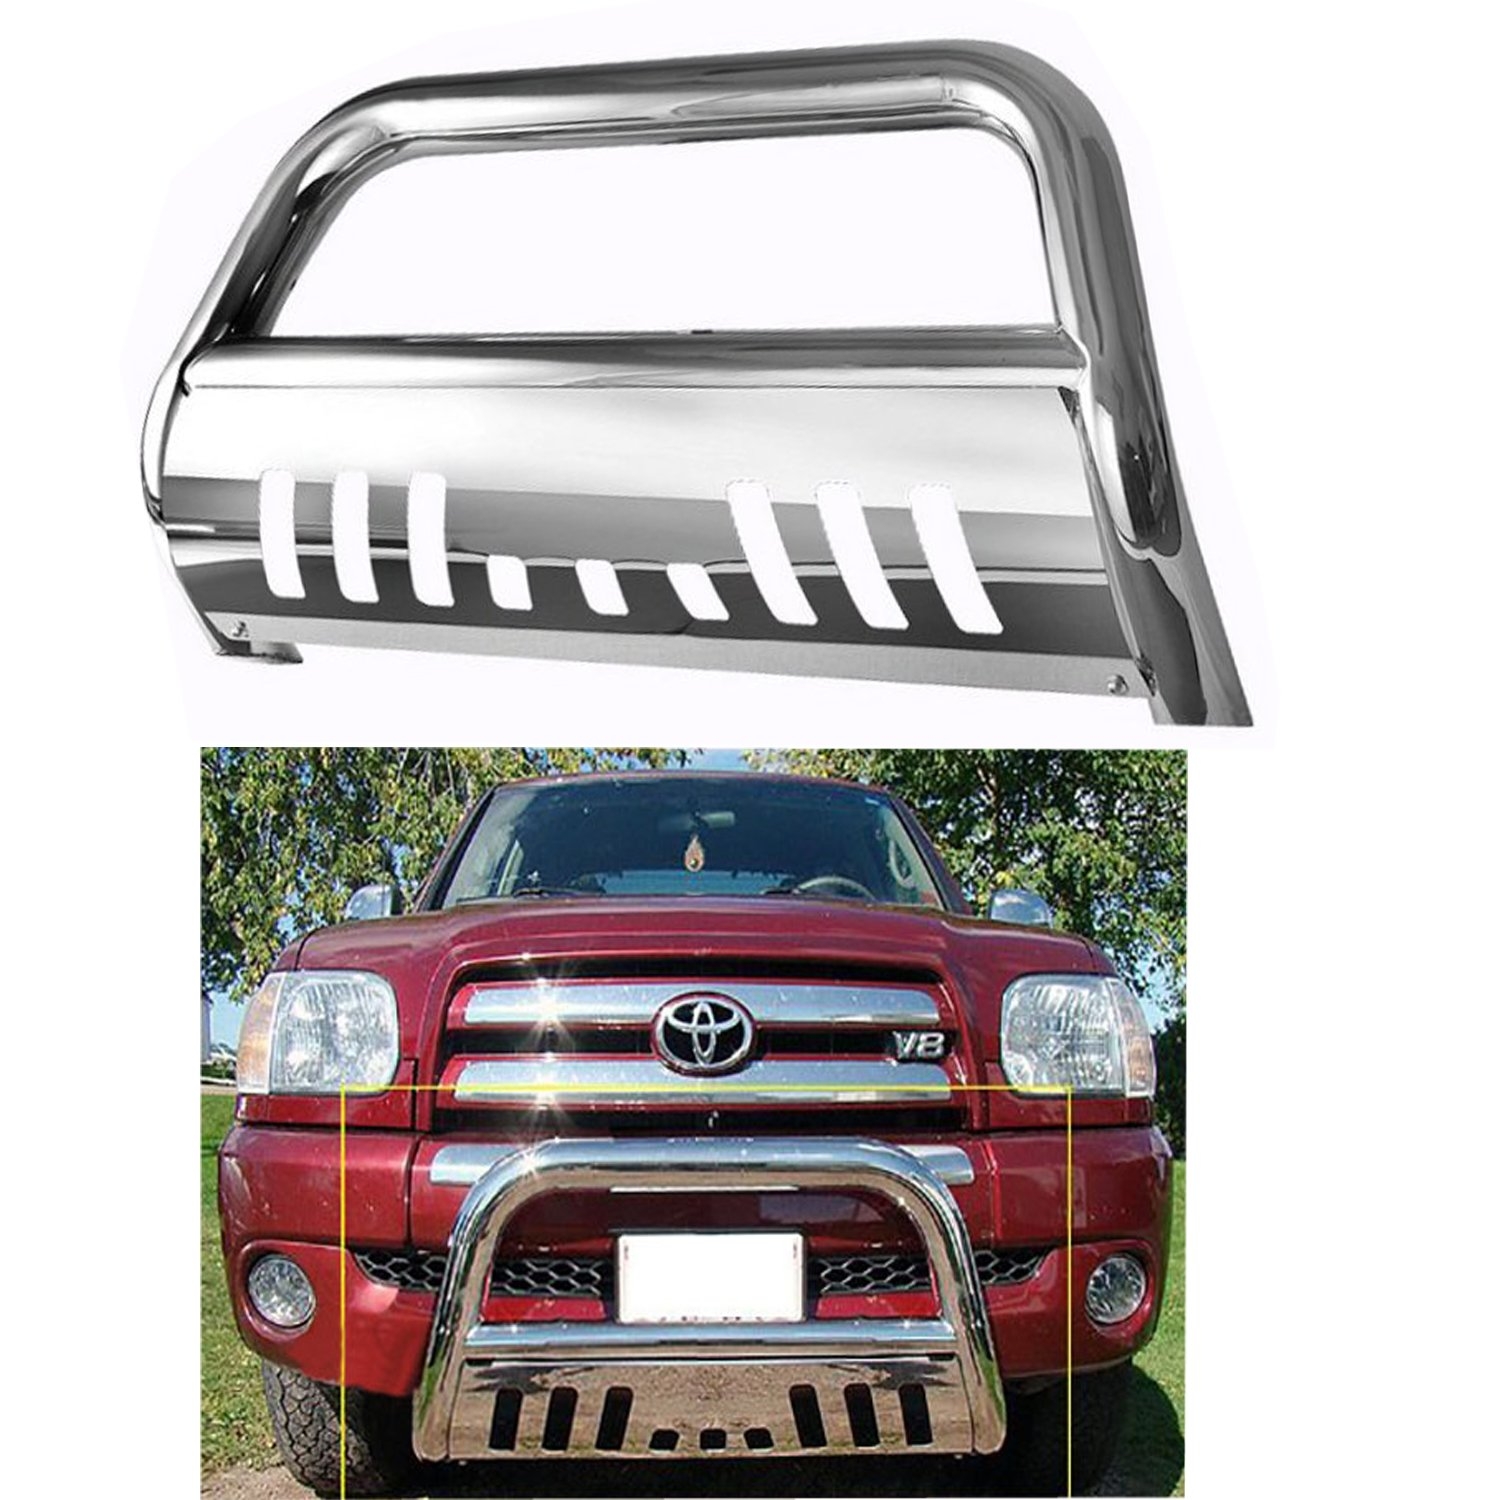 Bull Bar Skid Plate Front Push Bumper Grille Guard Stainless Steel Chrome for 2007-2016 Toyota Tundra 2008-2016 Toyota Sequoia